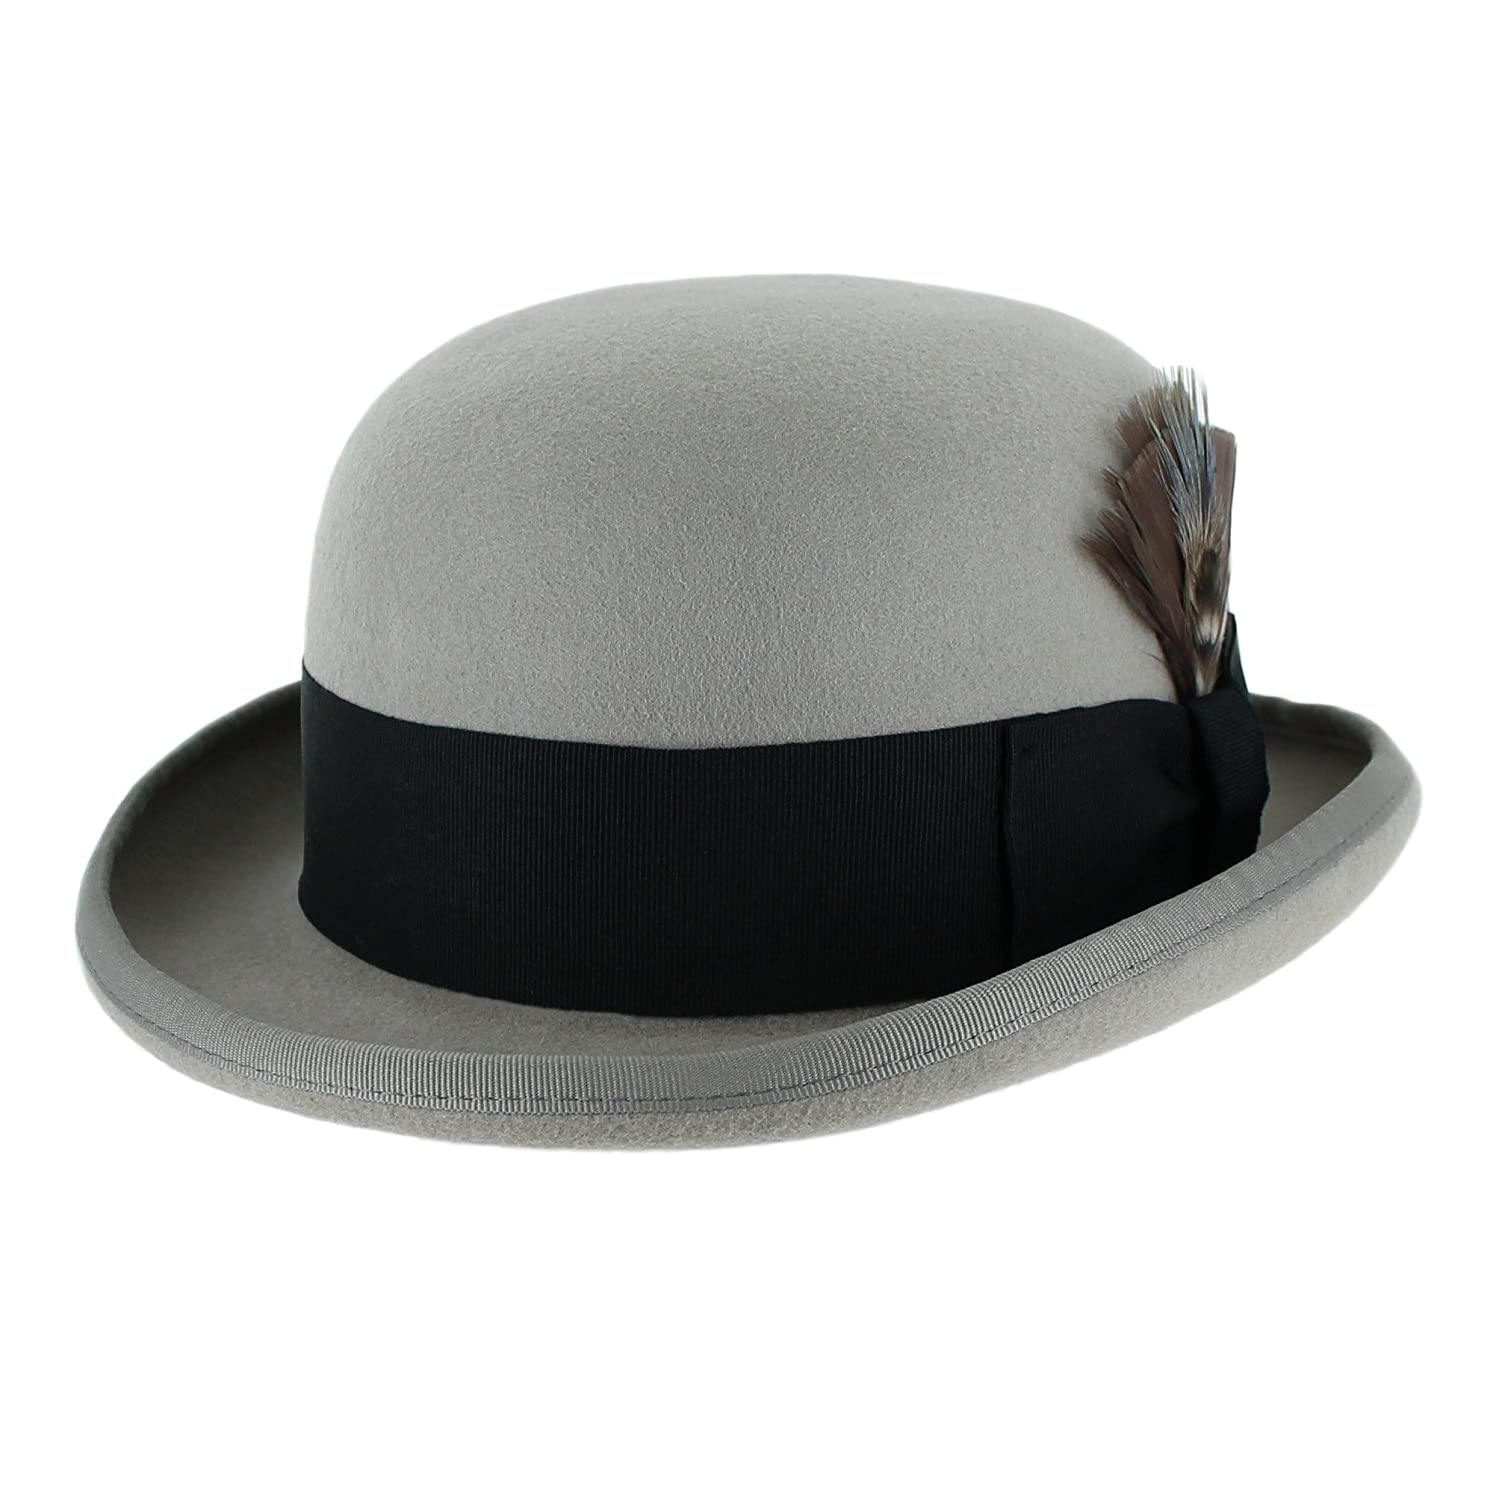 Steampunk Hats for Men | Top Hat, Bowler, Masks Belfry Bowler Derby 100% Pure Wool Theater Quality Hat in Black Brown Grey Navy Pearl Green $39.95 AT vintagedancer.com